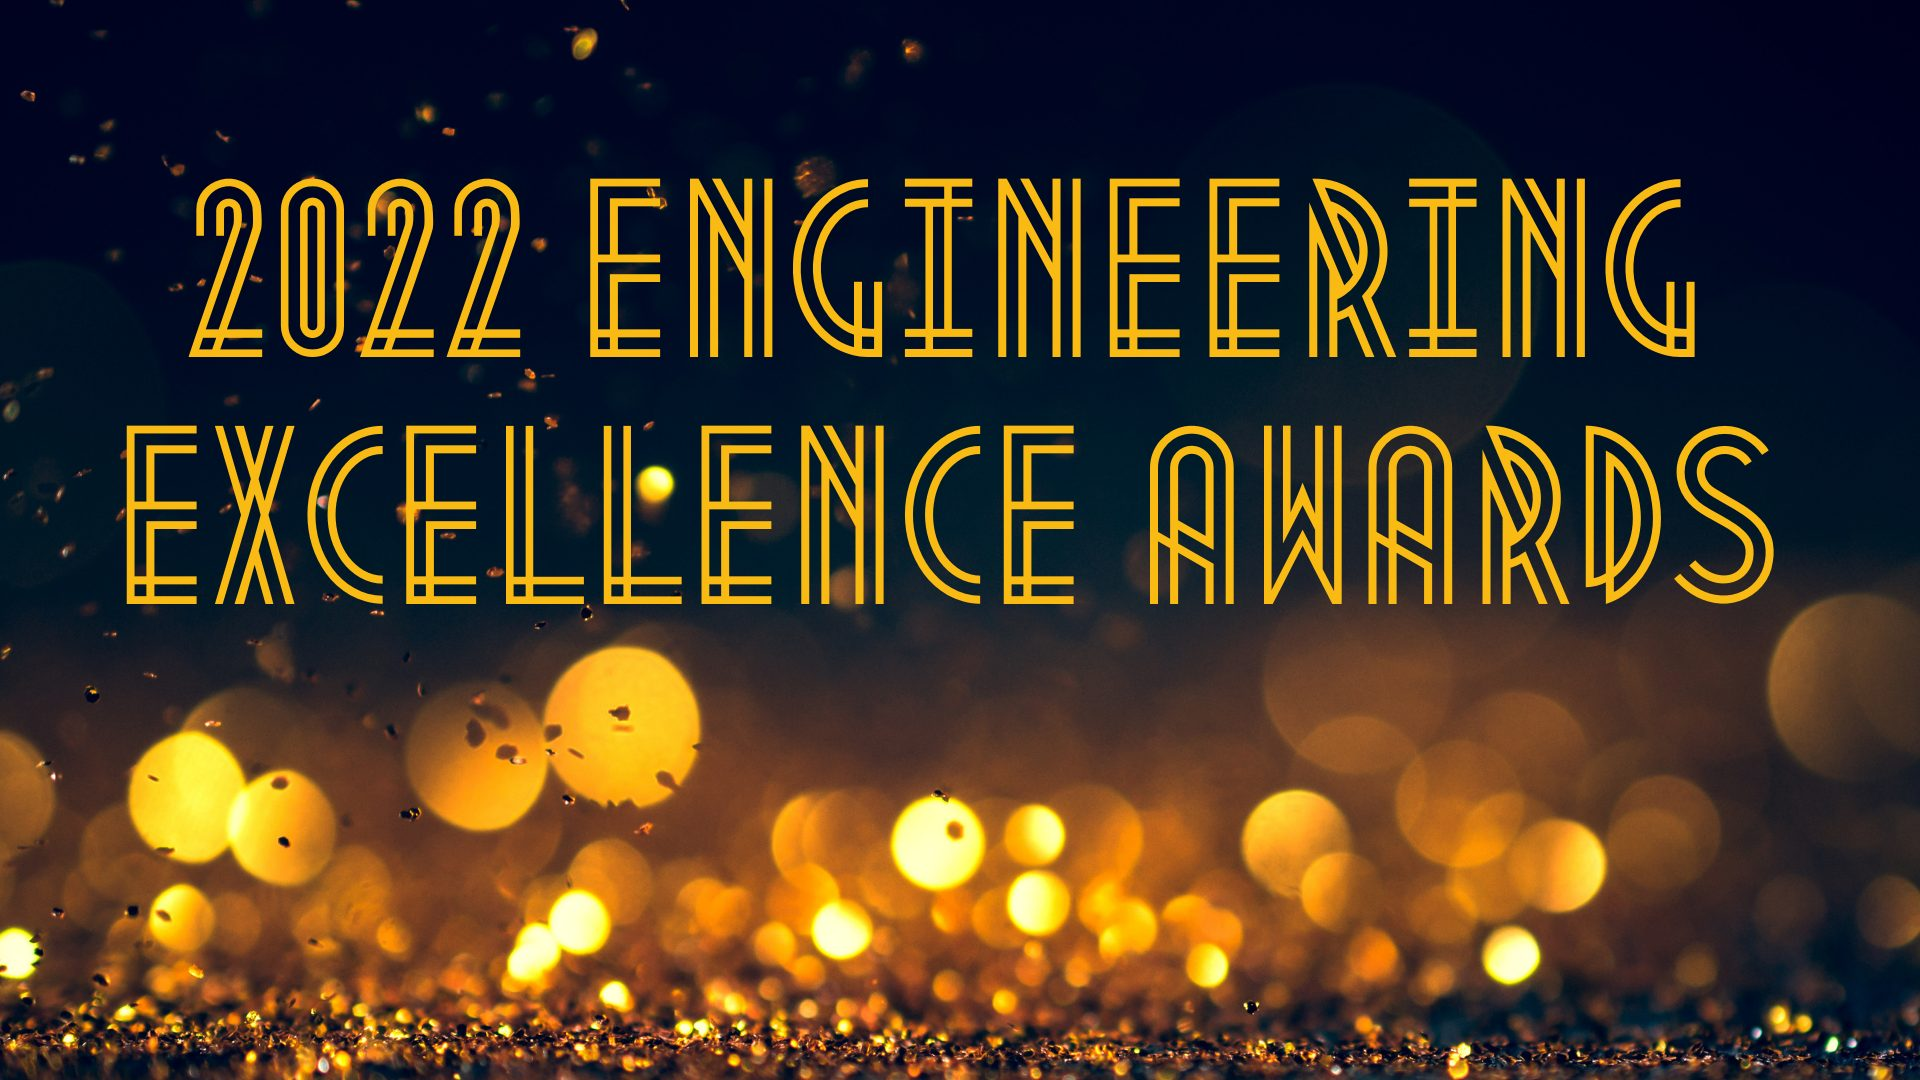 2022 Engineering Excellence Awards